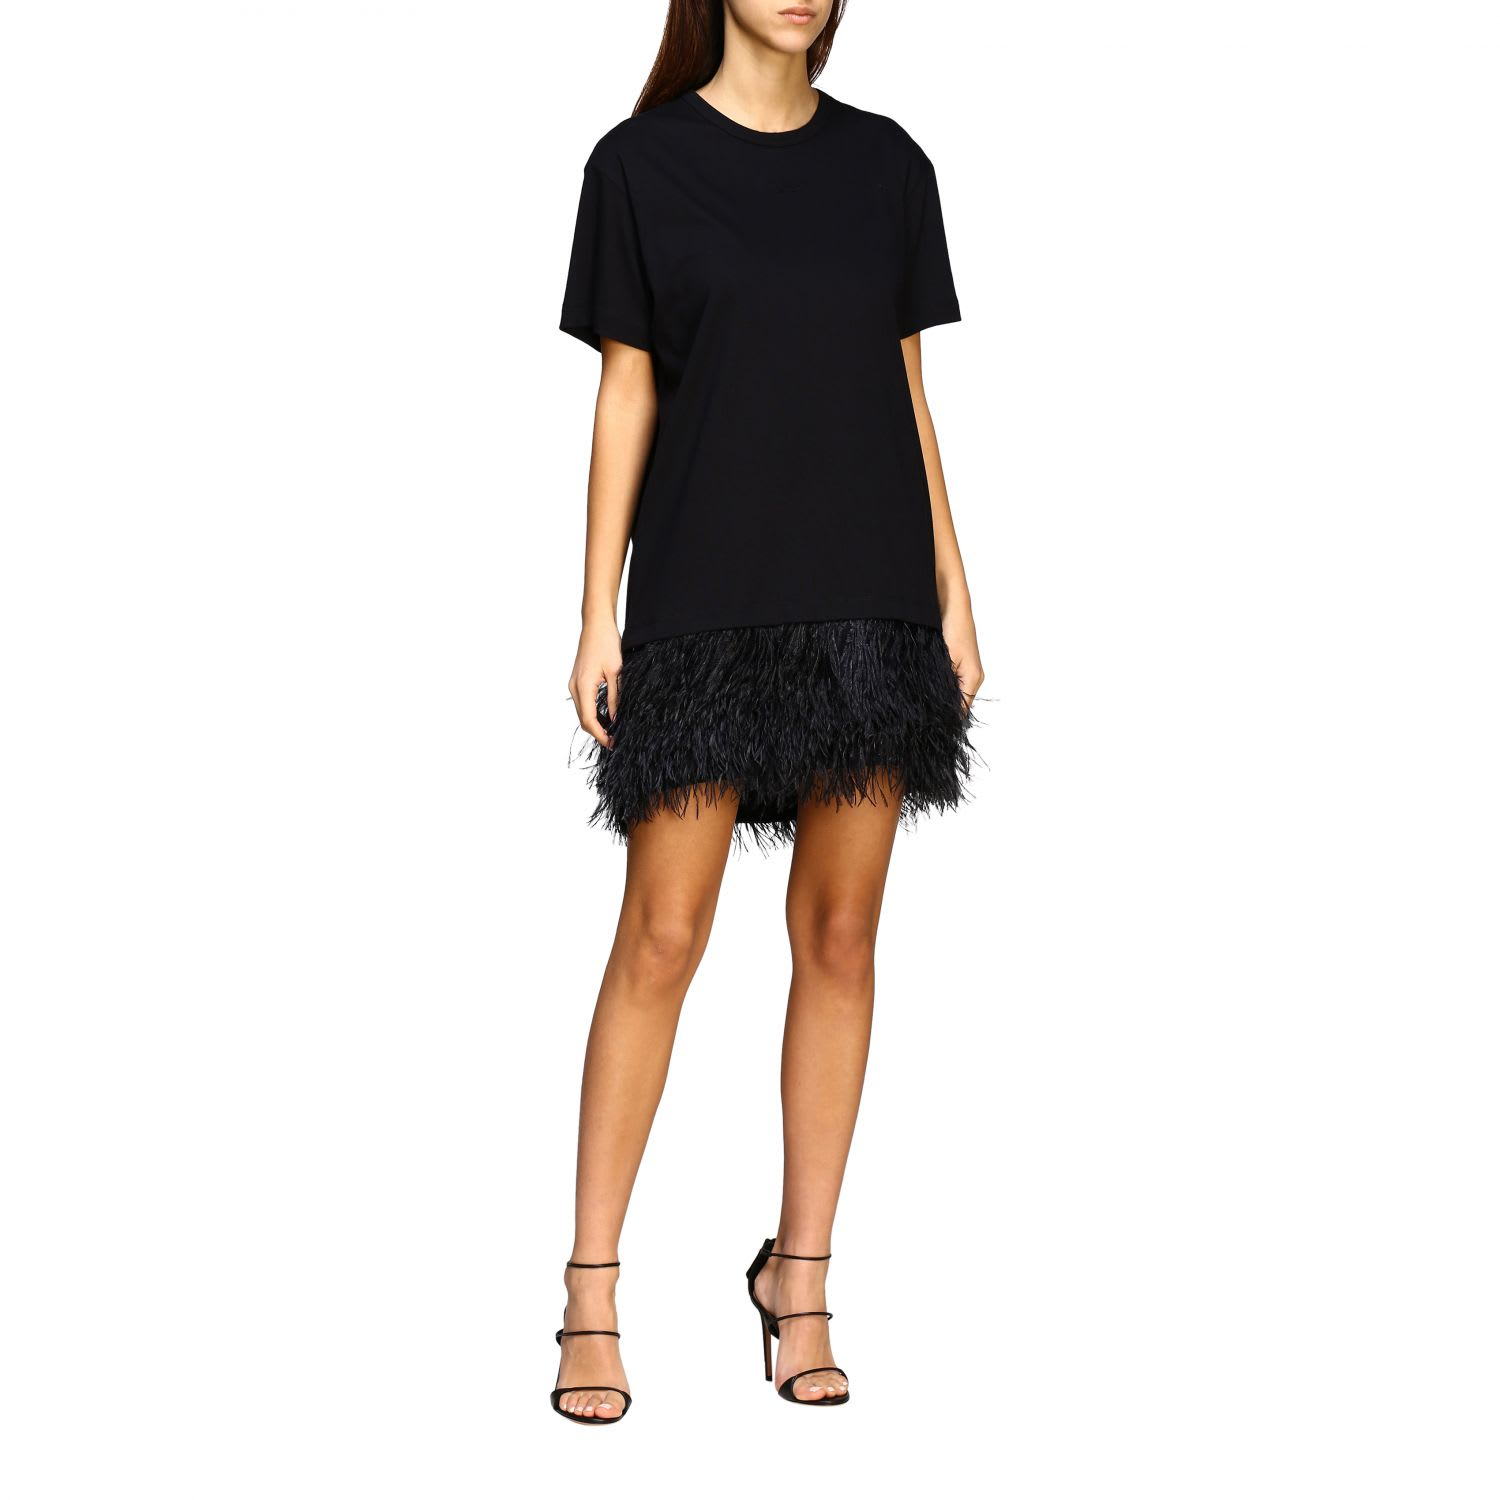 Buy N° 21 Dress N ° 21 Short Dress In Cotton Jersey With Feather Bottom online, shop N.21 with free shipping